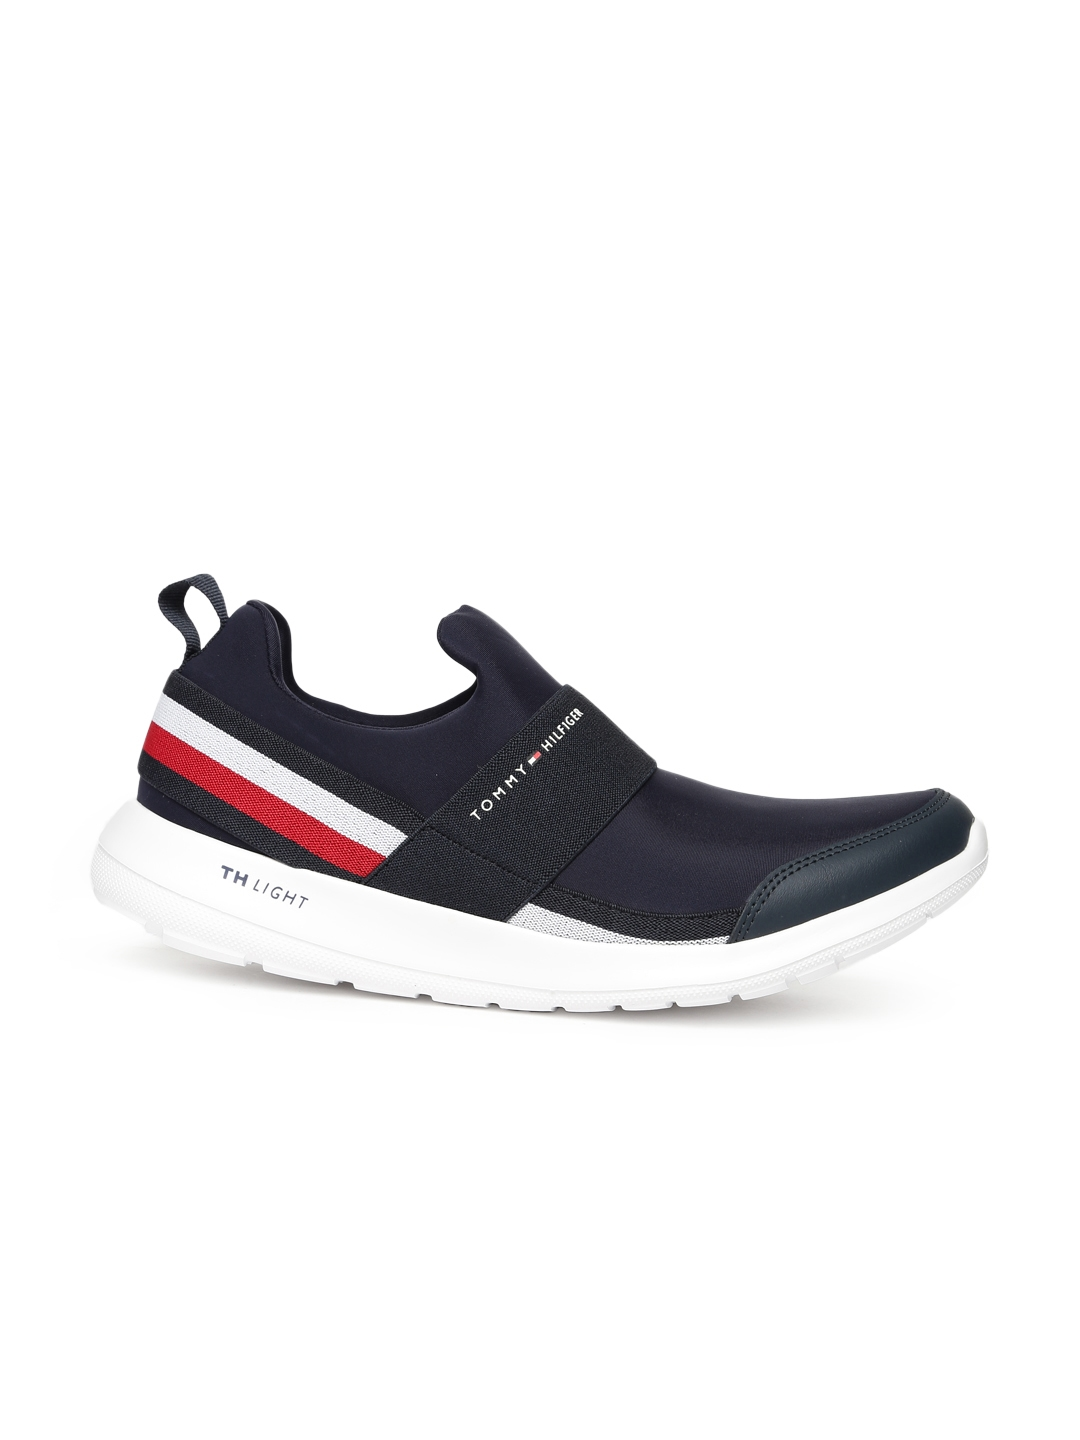 d225736d66094 Buy Tommy Hilfiger Men Navy Blue Slip On Sneakers - Casual Shoes for ...